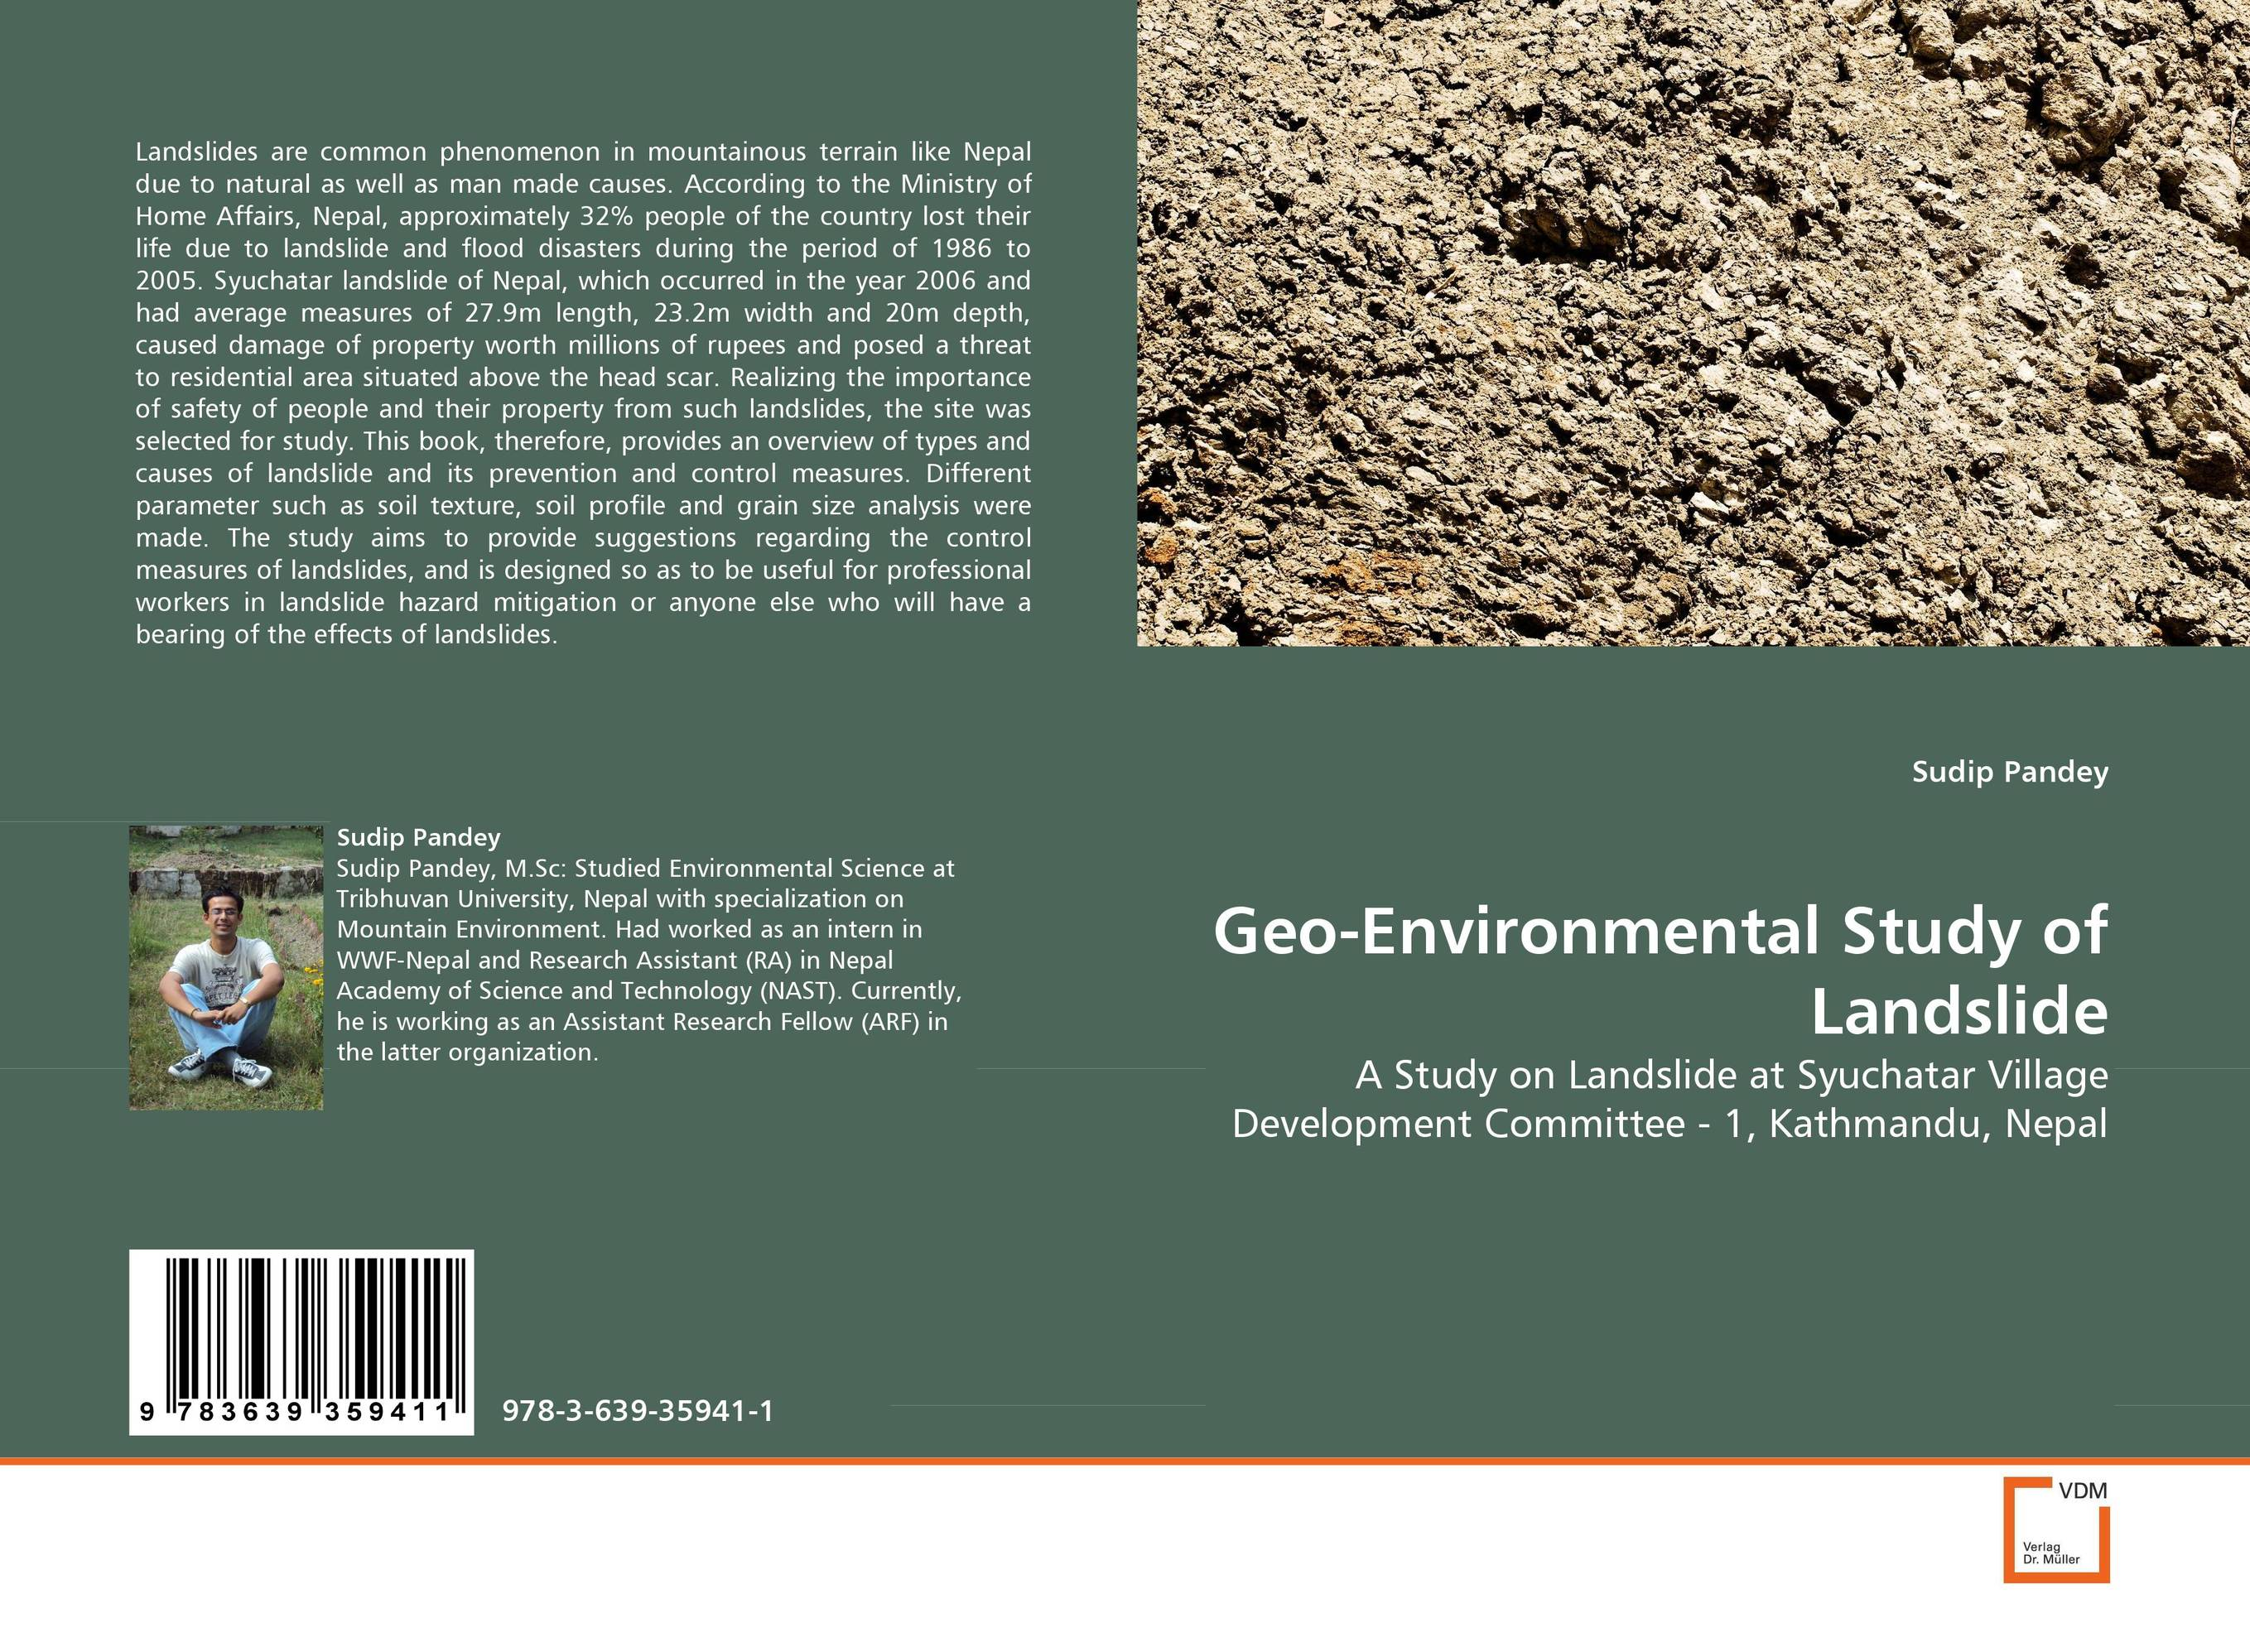 купить Geo-Environmental Study of Landslide недорого